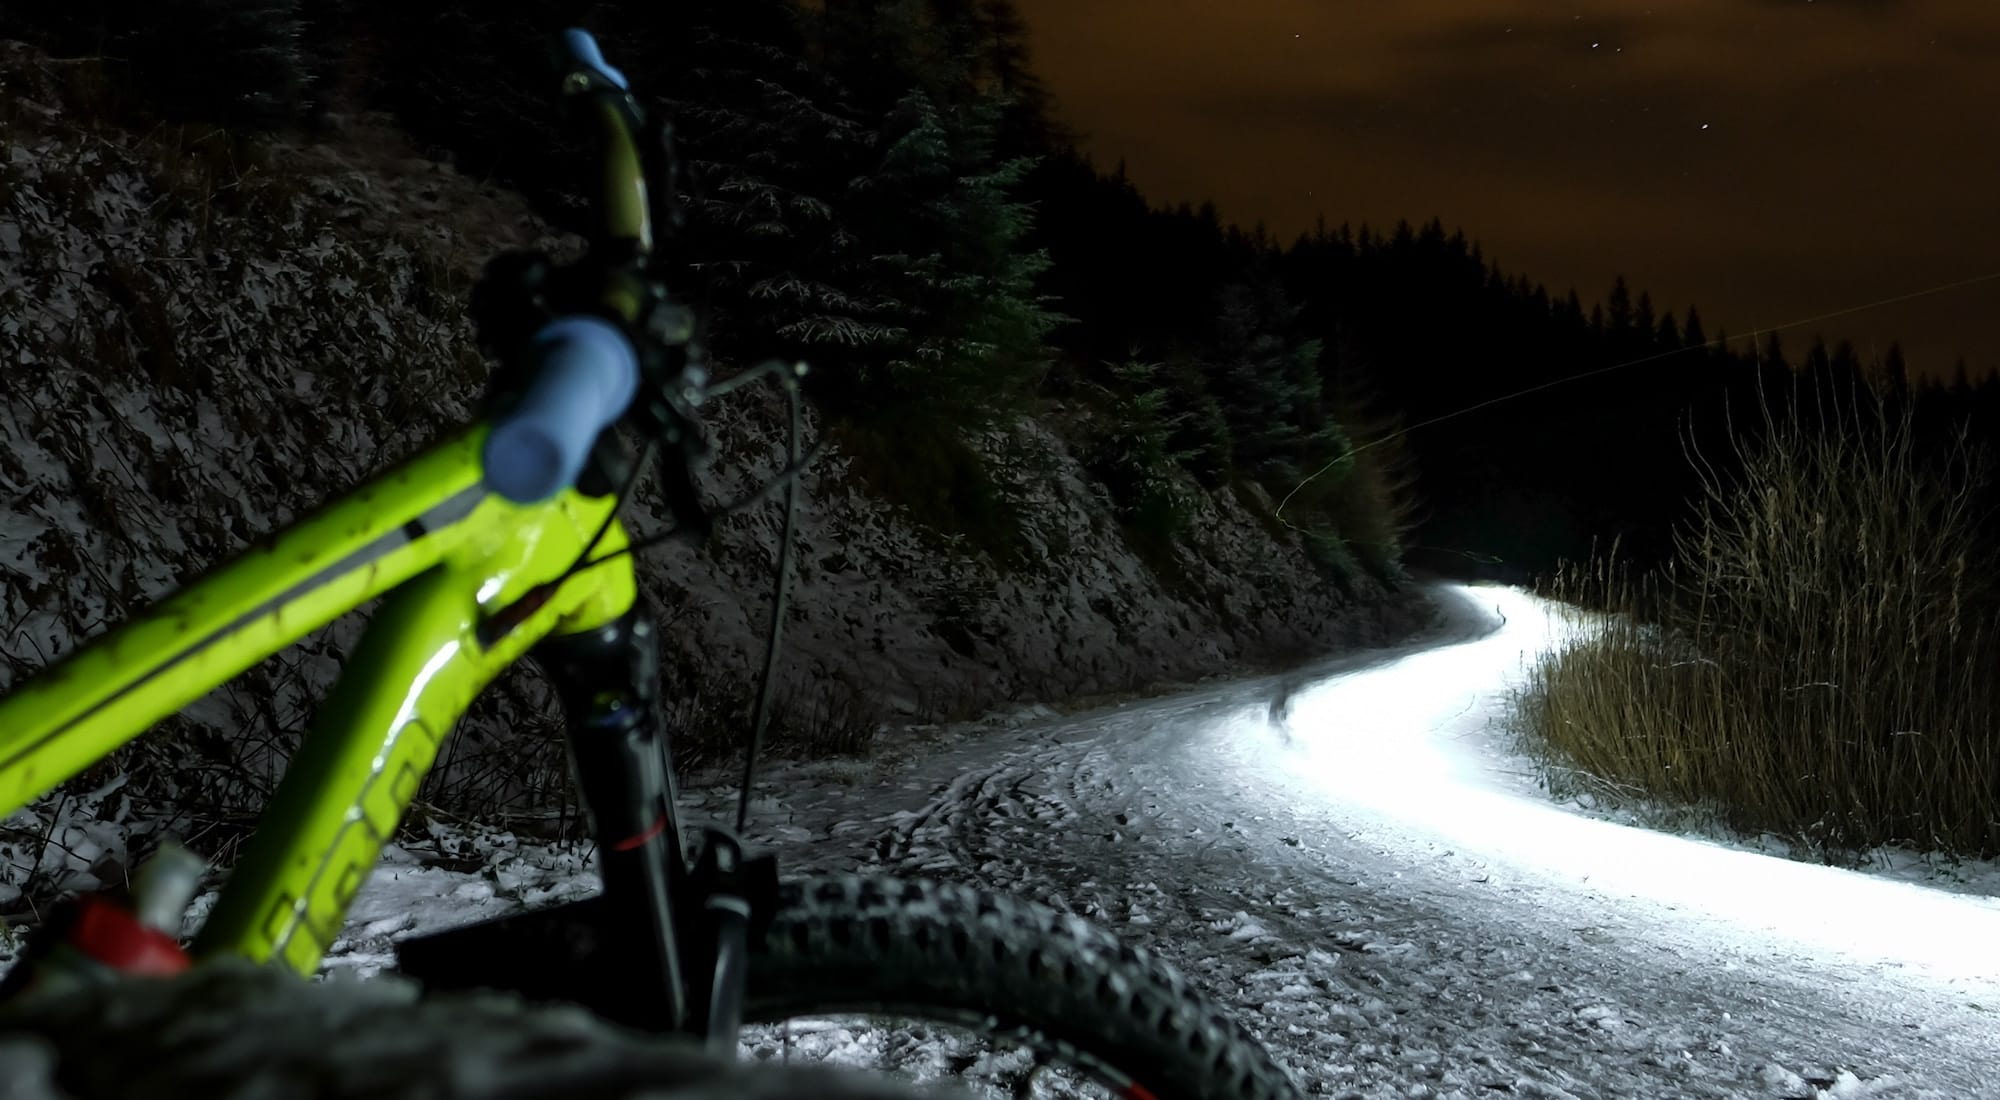 tips for biking at night